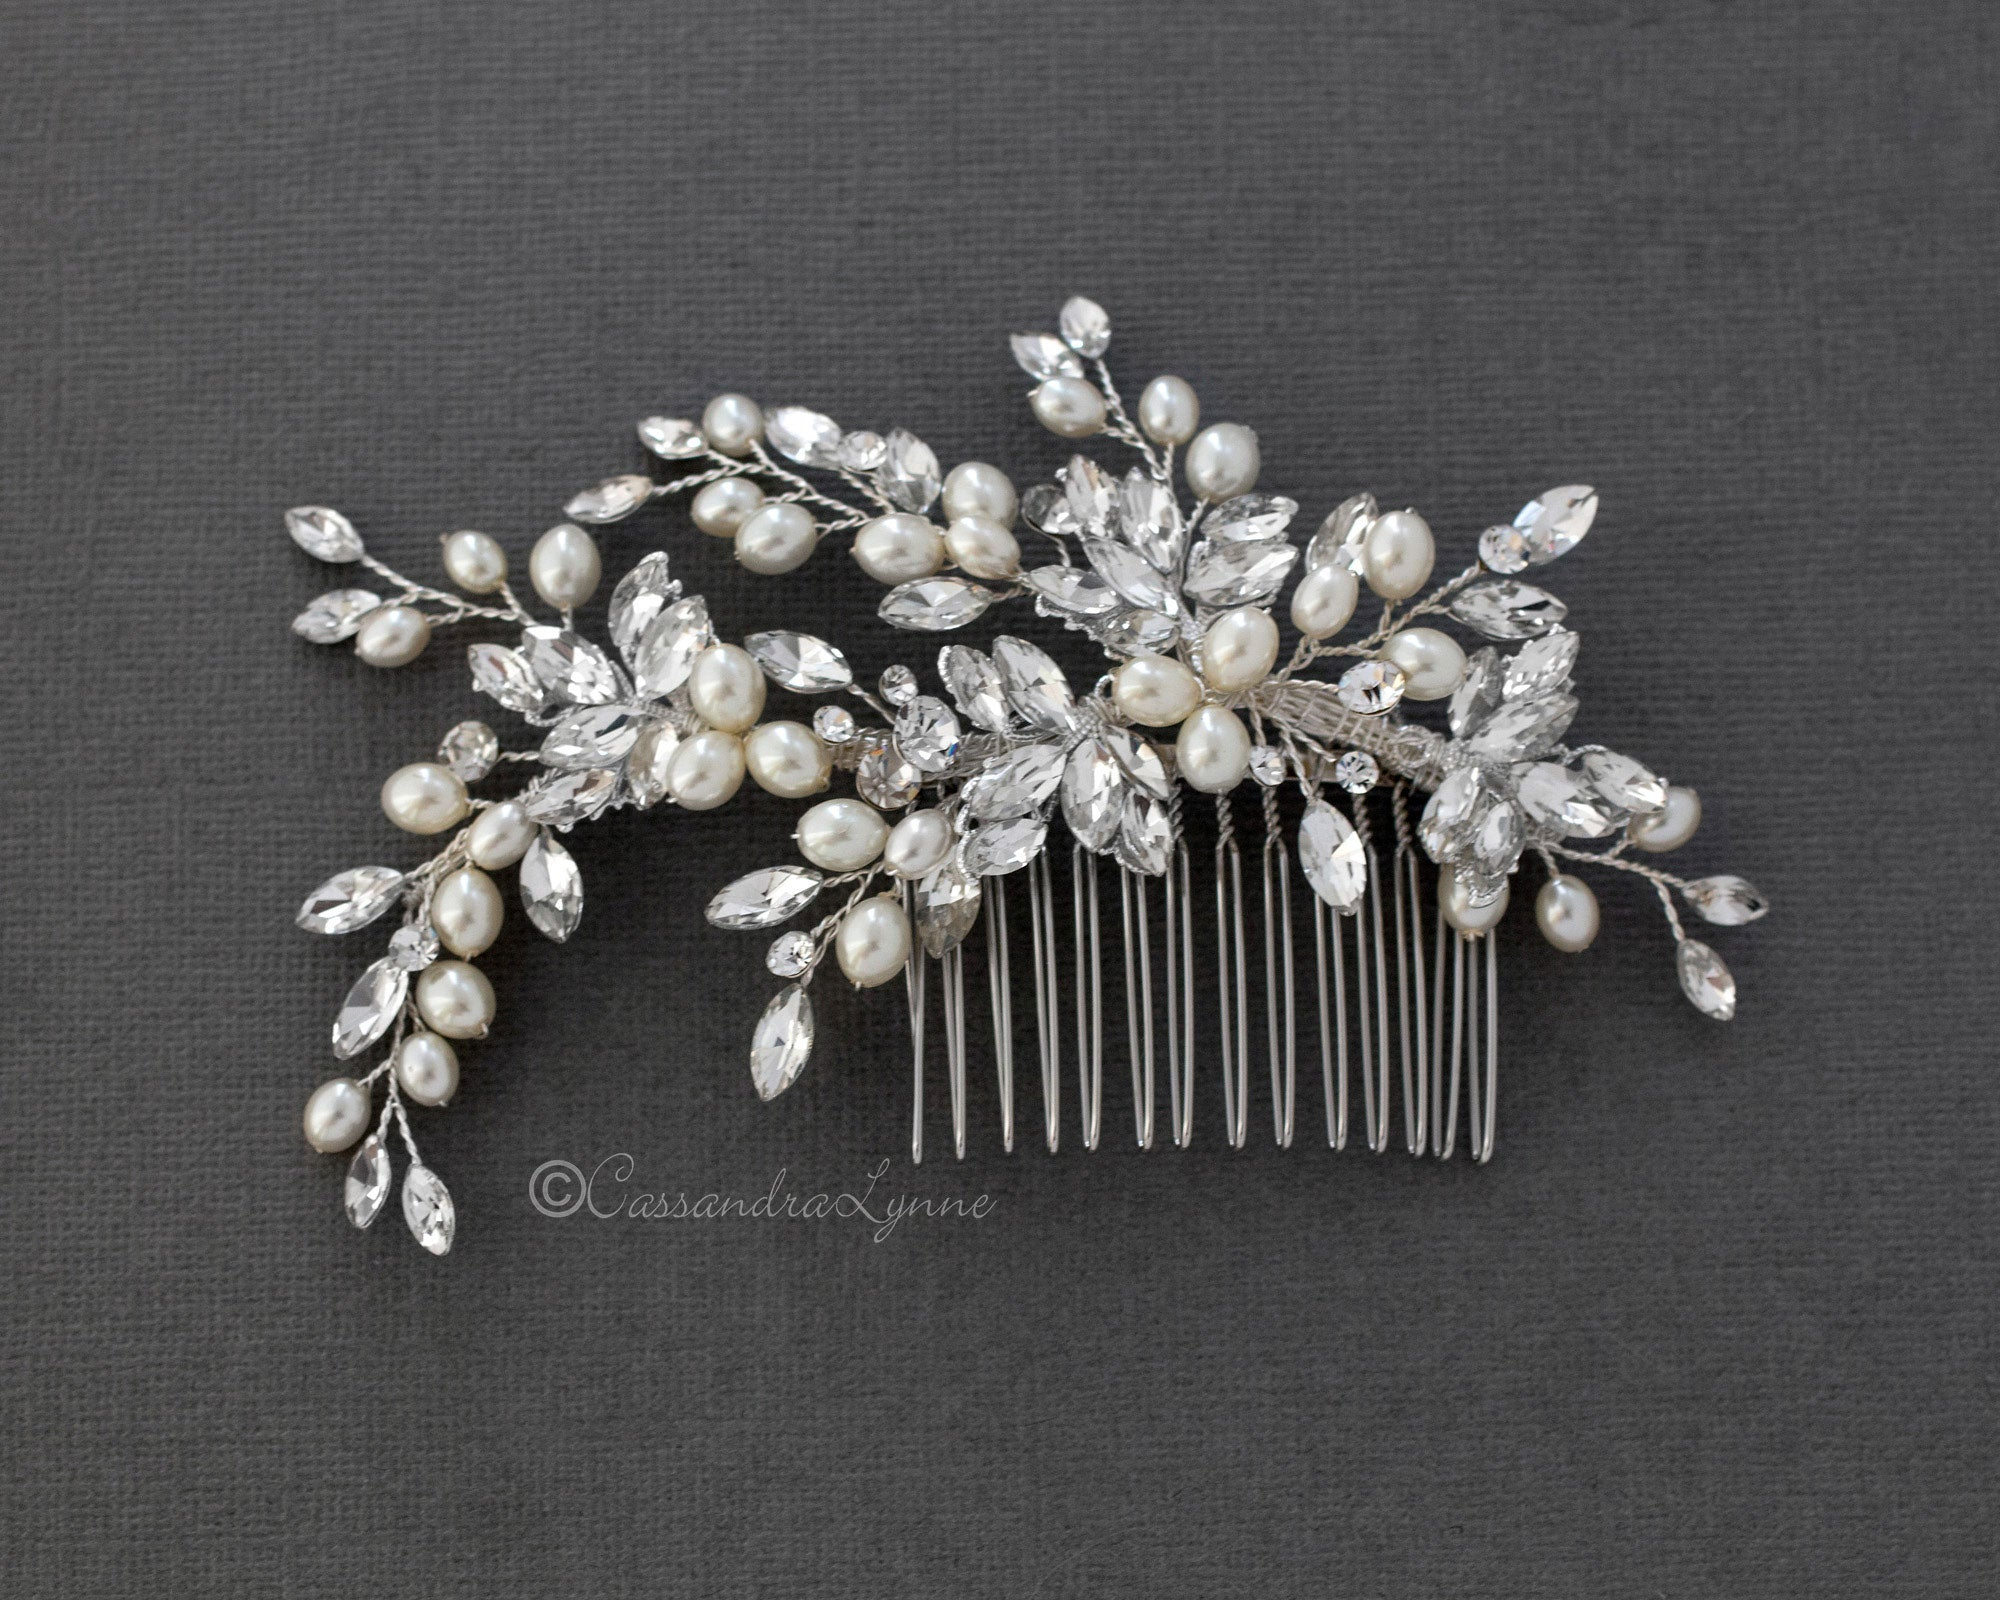 Oval Pearls Crystal Wedding Hair Comb